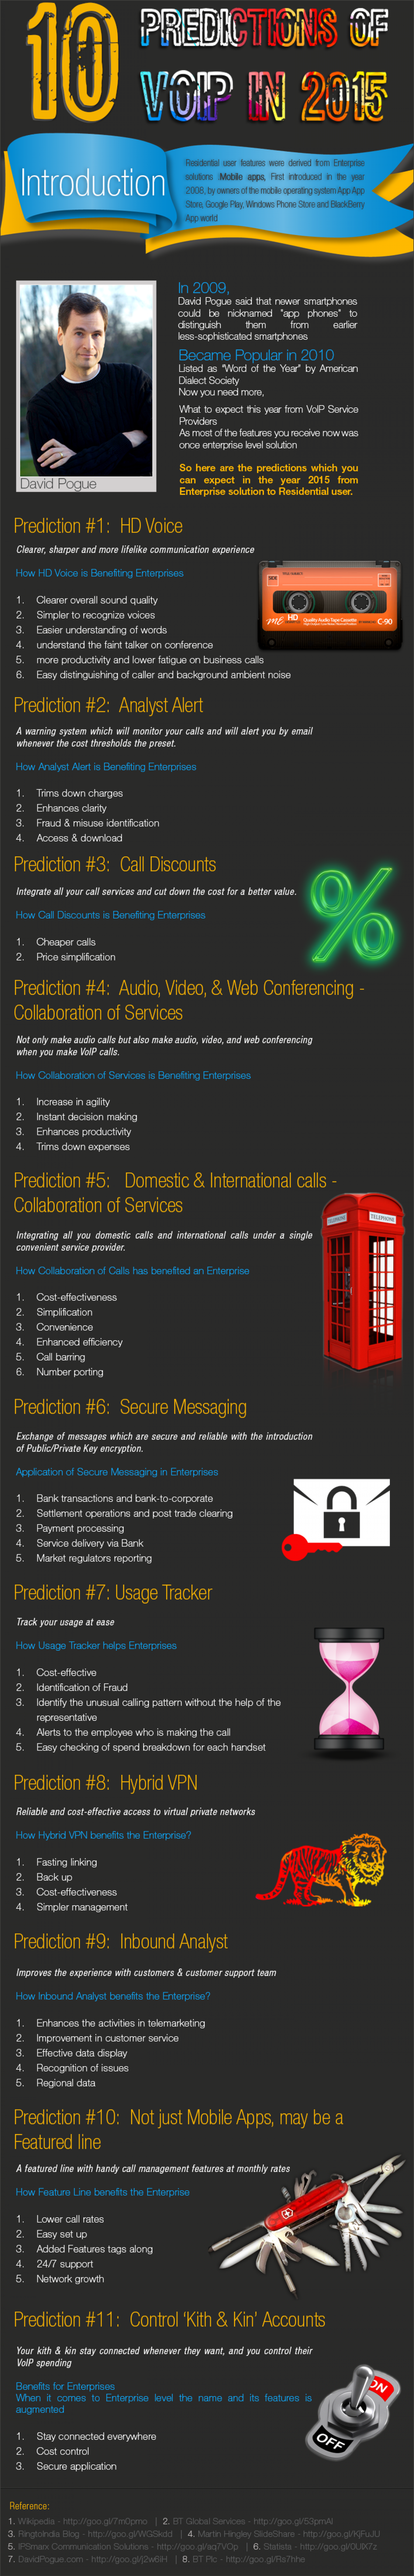 VoIP Predictions in year 2015 Infographic